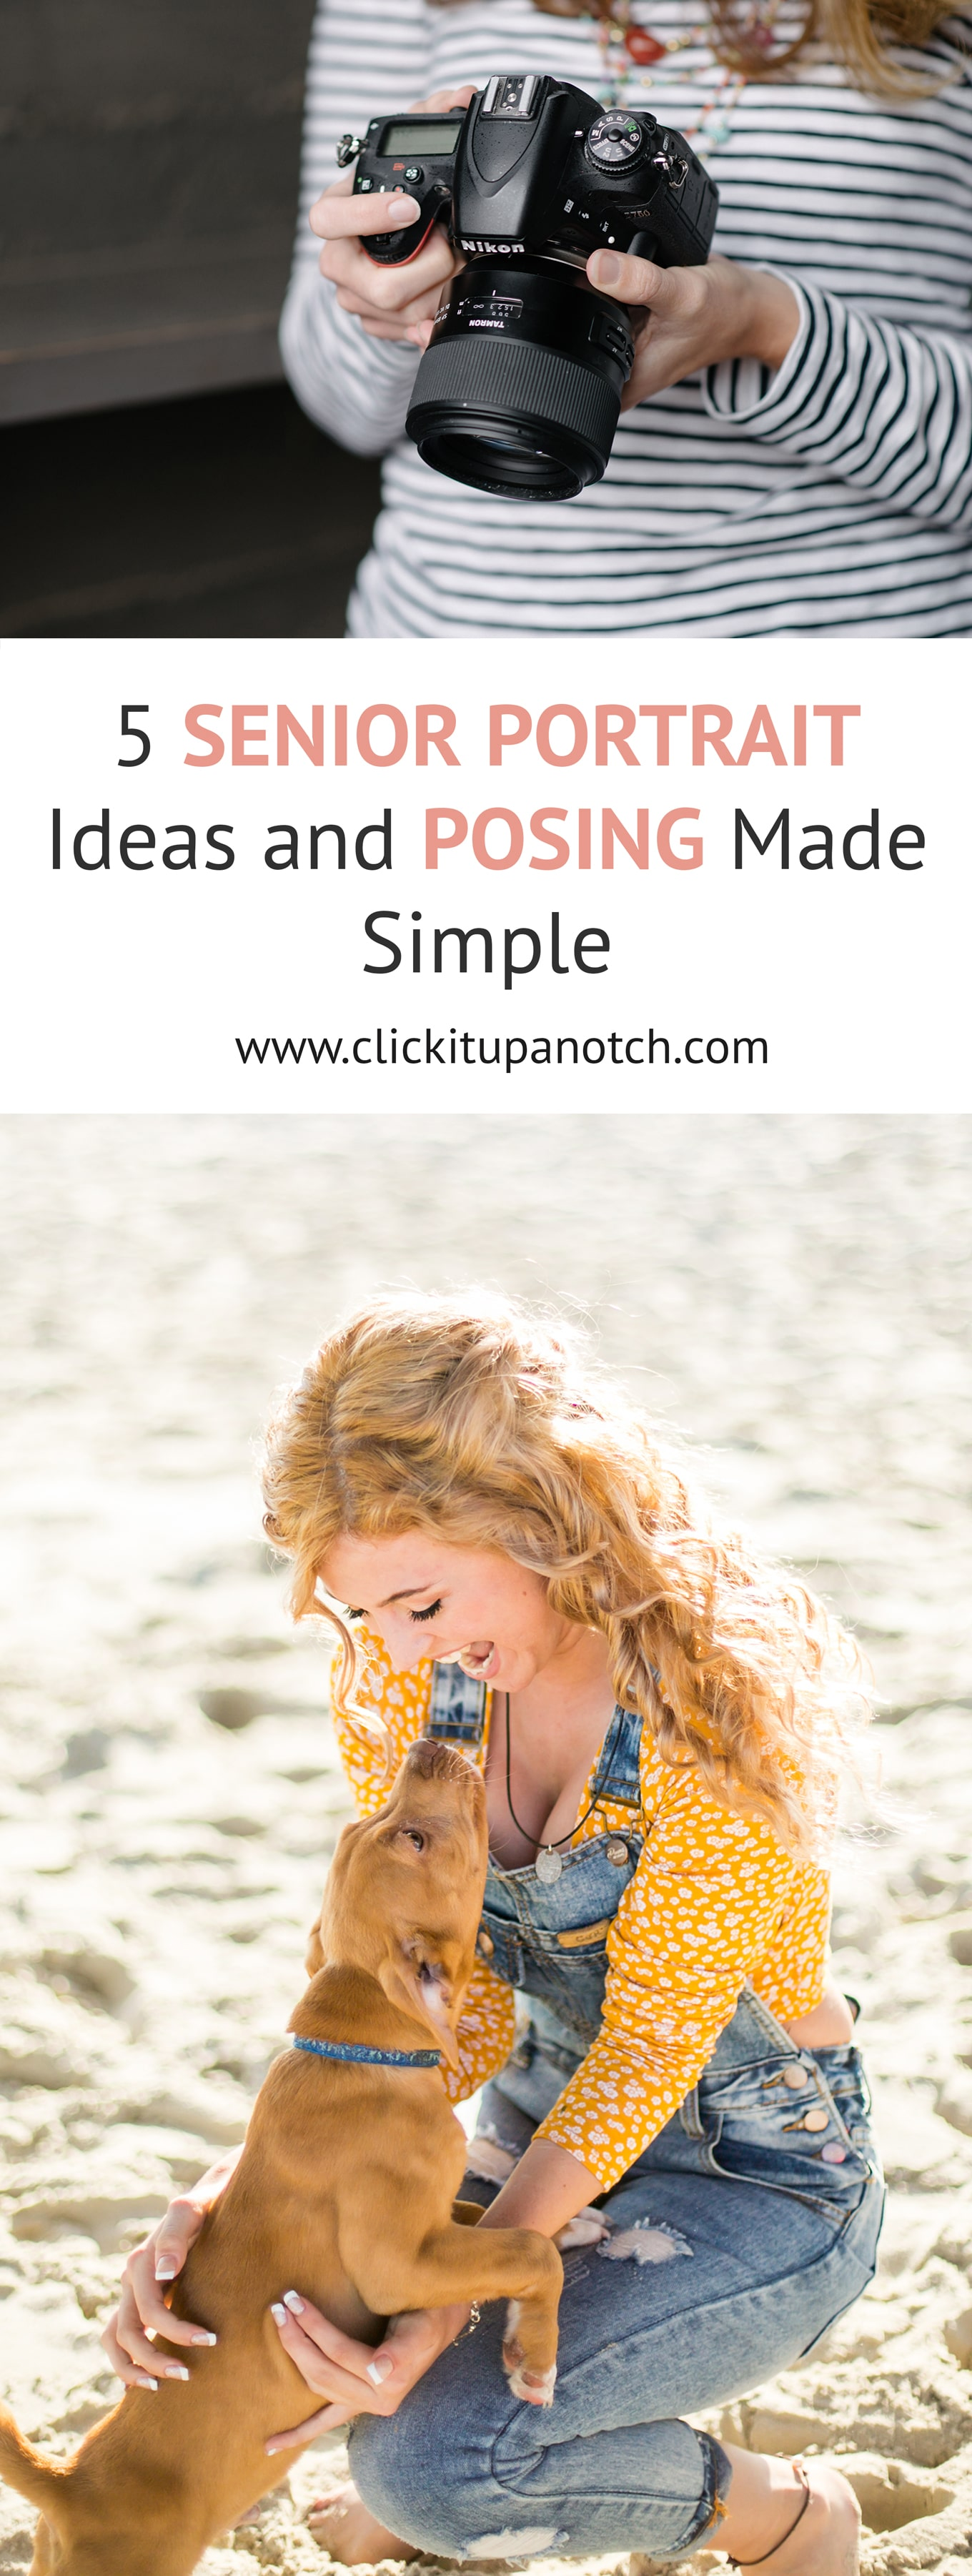 "These ideas are also great for other types of portrait sessions. There are bonus tips at the end too! Read ""5 Senior Portrait Ideas and Posing Made Simple"""